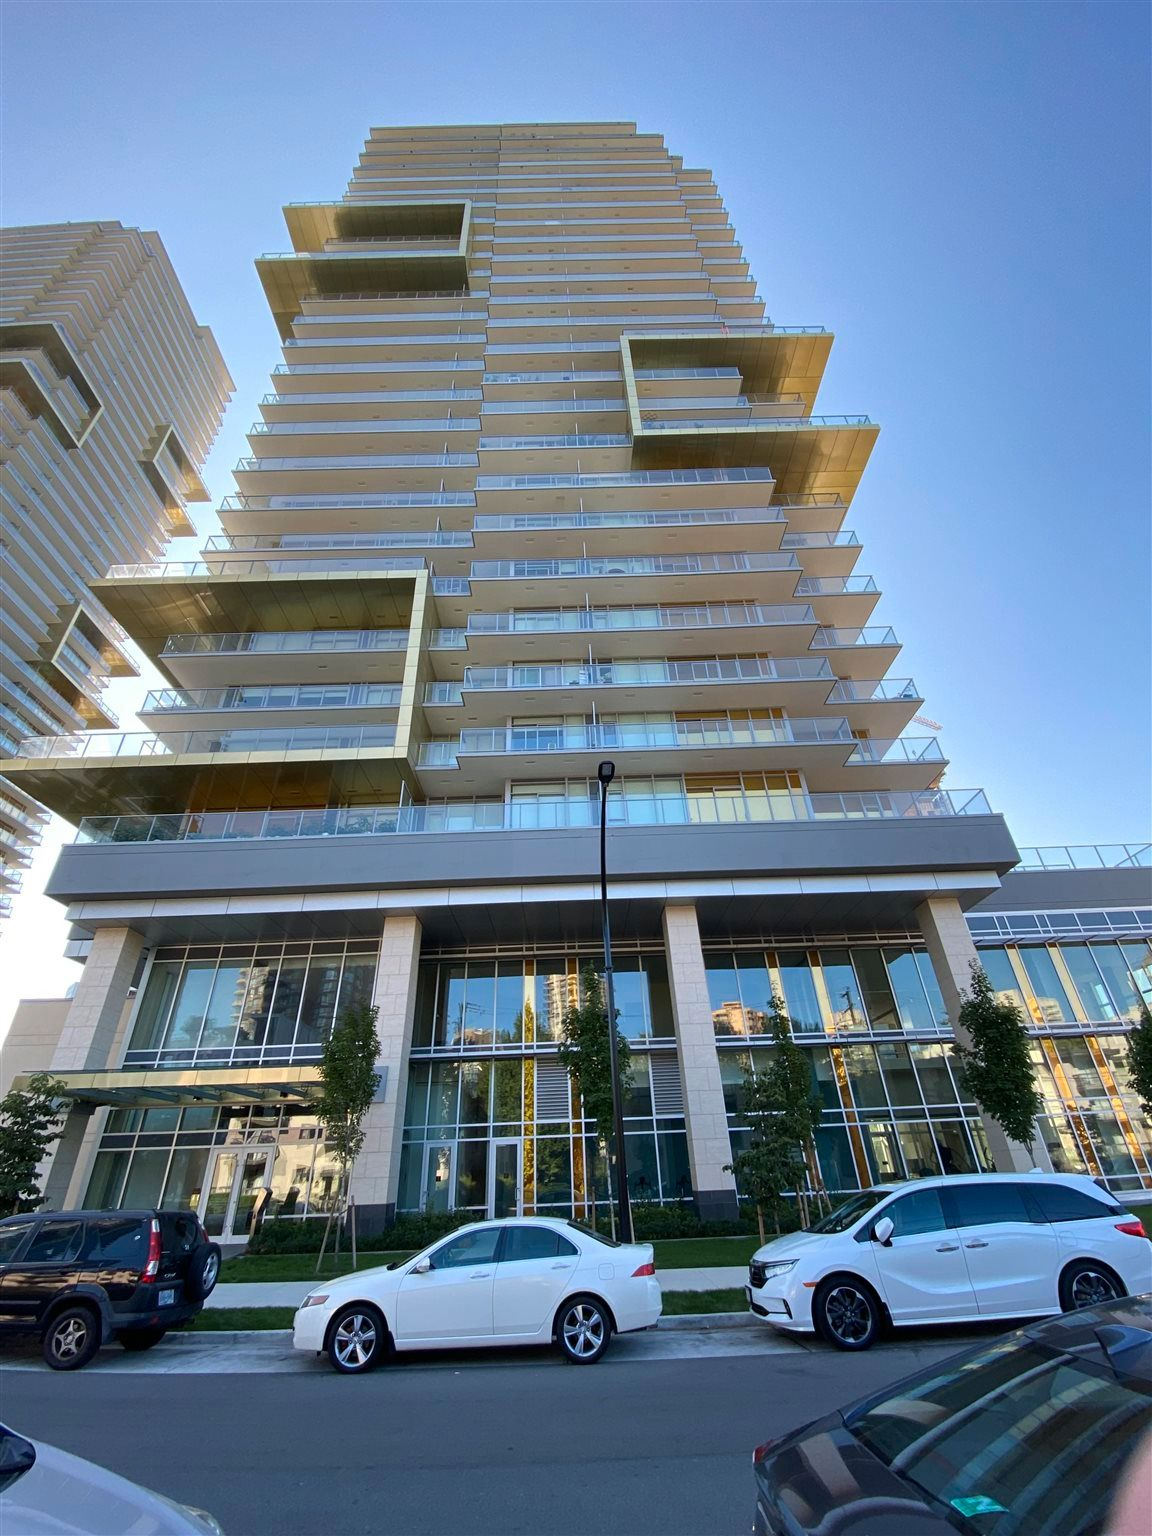 """Photo 2: Photos: 308 6288 CASSIE Avenue in Burnaby: Metrotown Condo for sale in """"GOLD HOUSE SOUTH TOWER"""" (Burnaby South)  : MLS®# R2606367"""